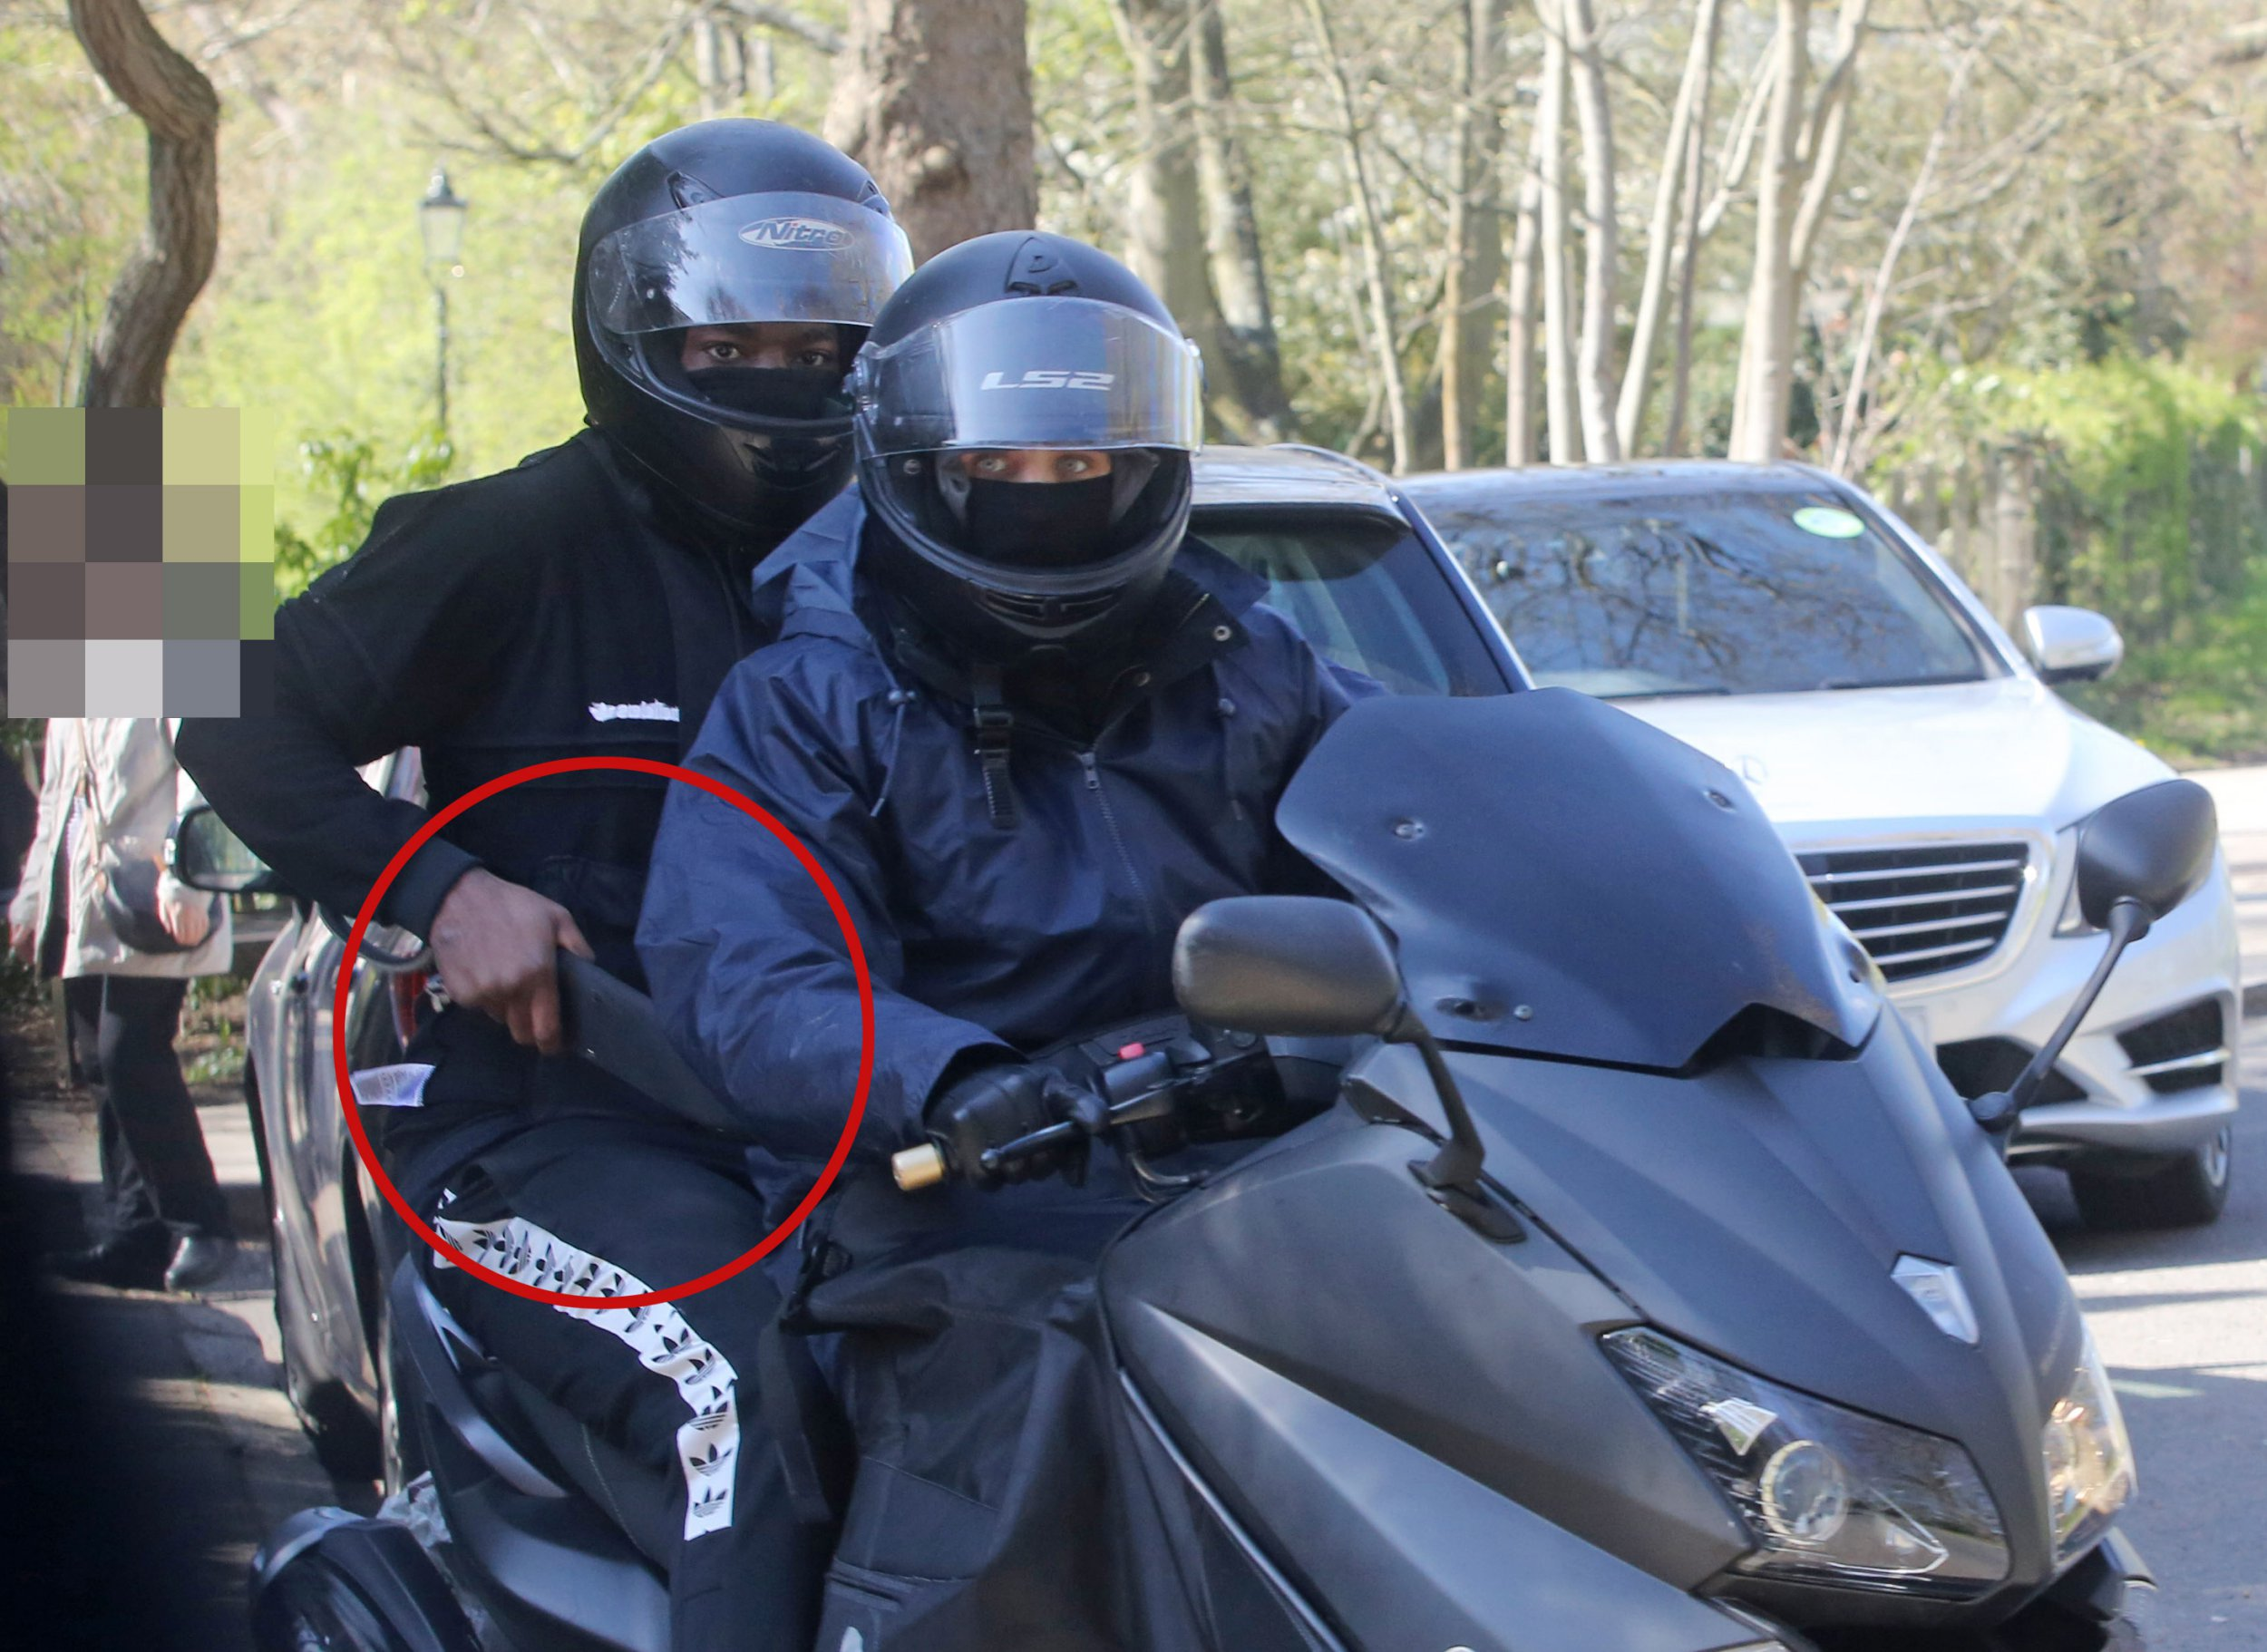 Picture captures moped thief holding huge knife 'moments after stealing man's Rolex'